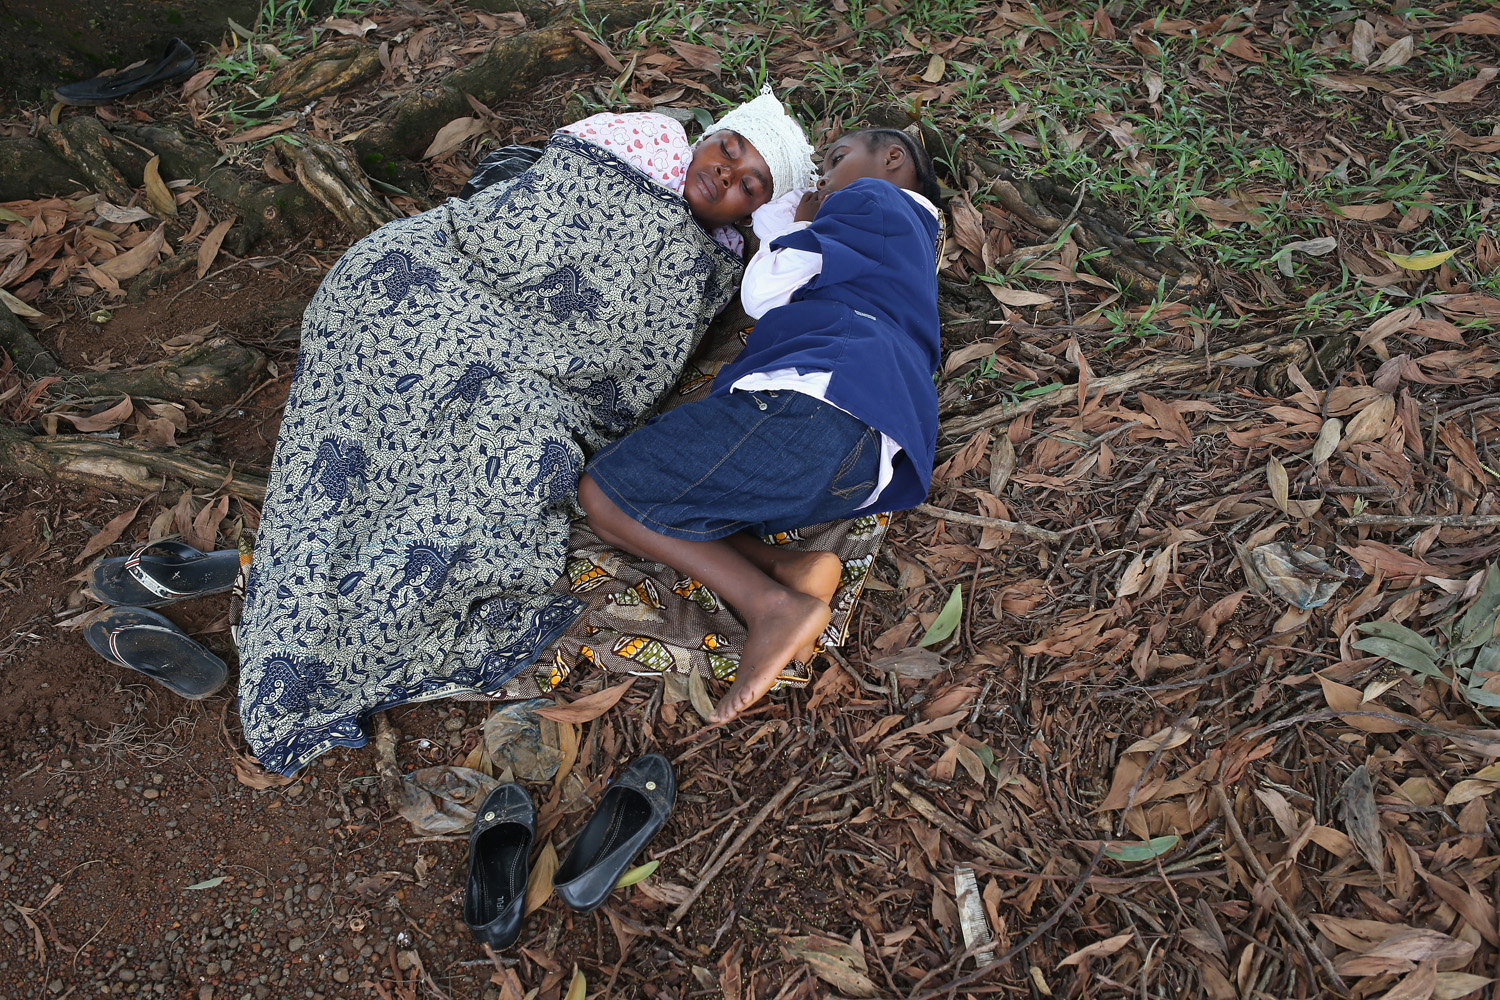 Aug. 17, 2014.  Hanah Siafa lies with her daughter Josephine, 10, while hoping to enter the new Doctors Without Borders (MSF), Ebola treatment center in Monrovia, Liberia.